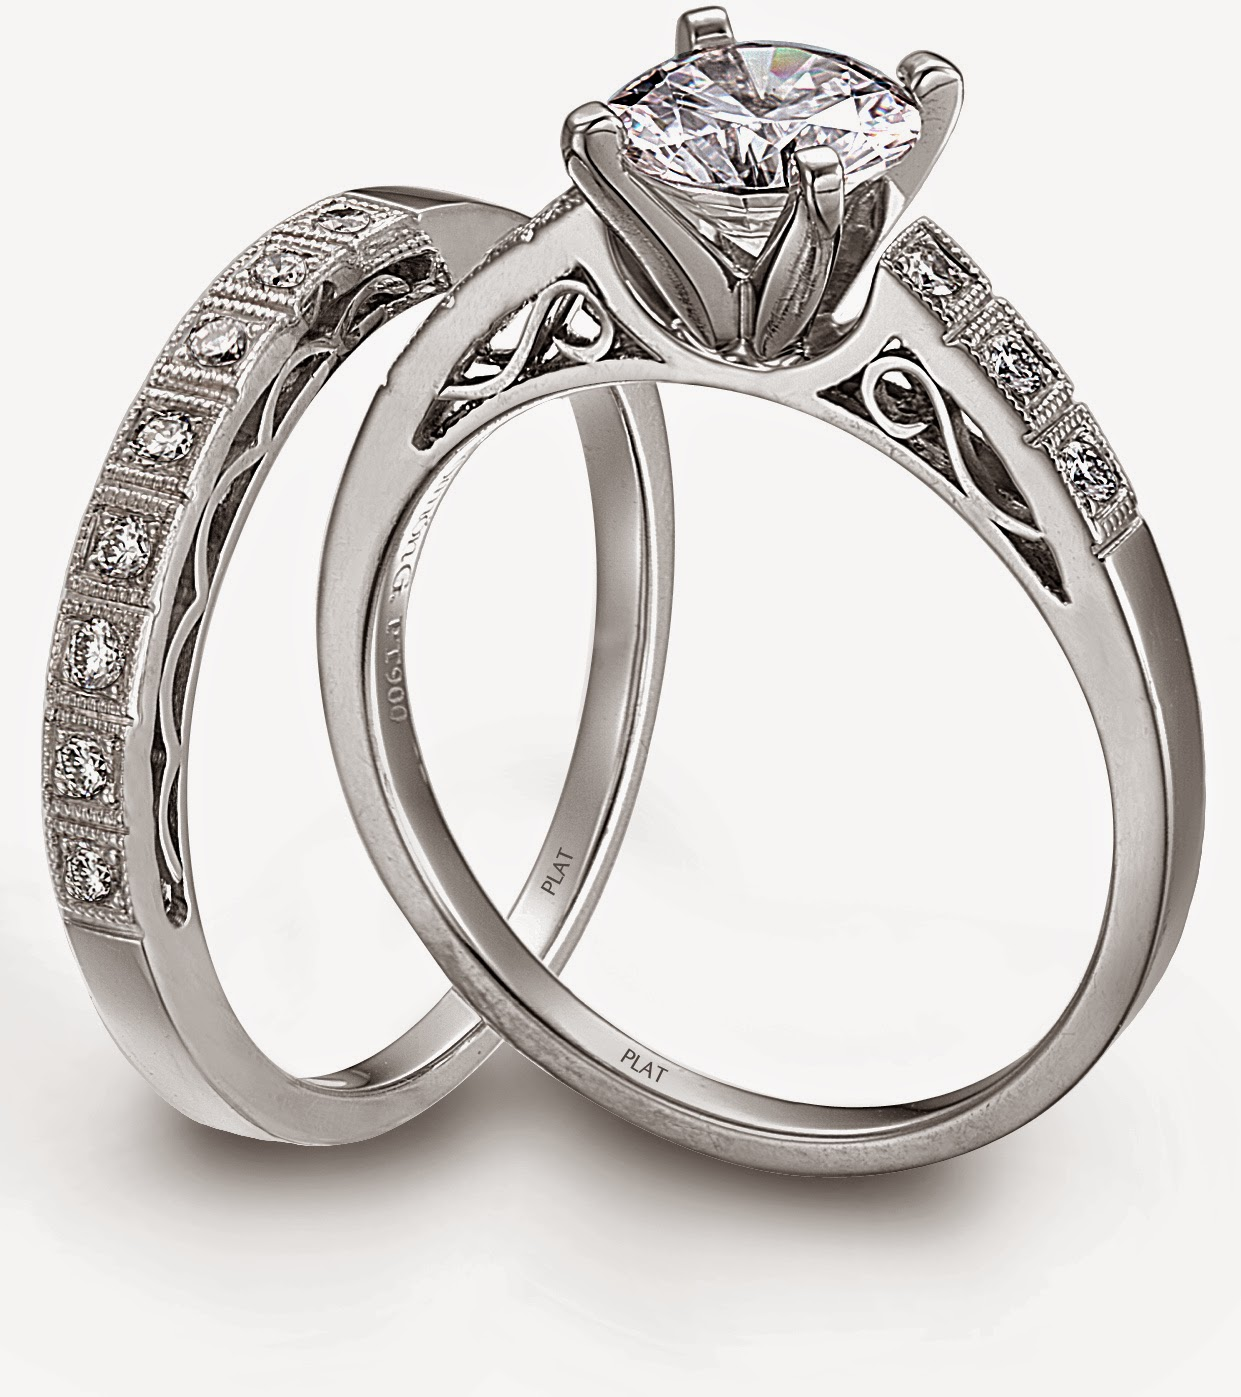 wedding ring ideas; wedding ring design; wedding ring design ideas; wedding ring platinum; platinum wedding rings; platinum engagement ring; platinum wedding ring set; platinum diamond wedding ring; platinum wedding ring men; platinum wedding ring design; platinum wedding ring ideas; platinum wedding ring design ideas